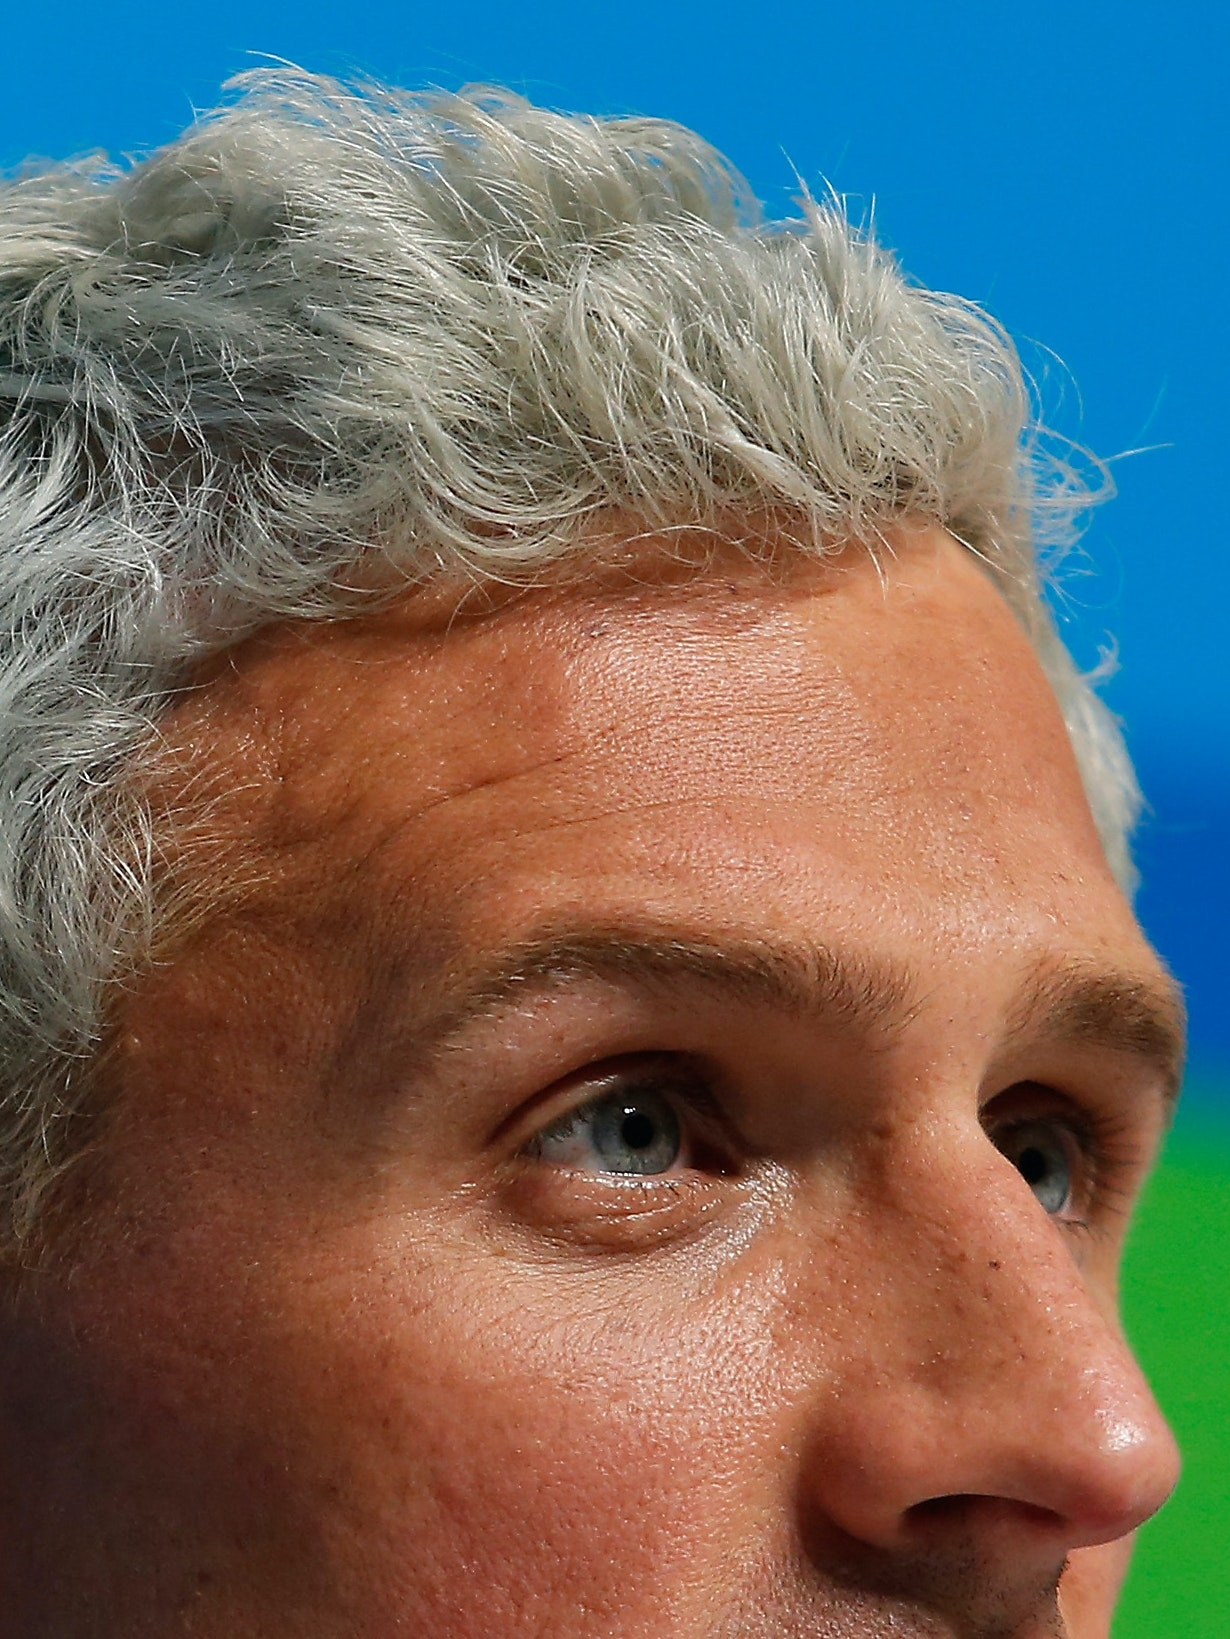 RIO DE JANEIRO, BRAZIL - AUGUST 12:  Ryan Lochte of the United States attends a press conference in the Main Press Center on Day 7 of the Rio Olympics on August 12, 2016 in Rio de Janeiro, Brazil.  (Photo by Matt Hazlett/Getty Images)